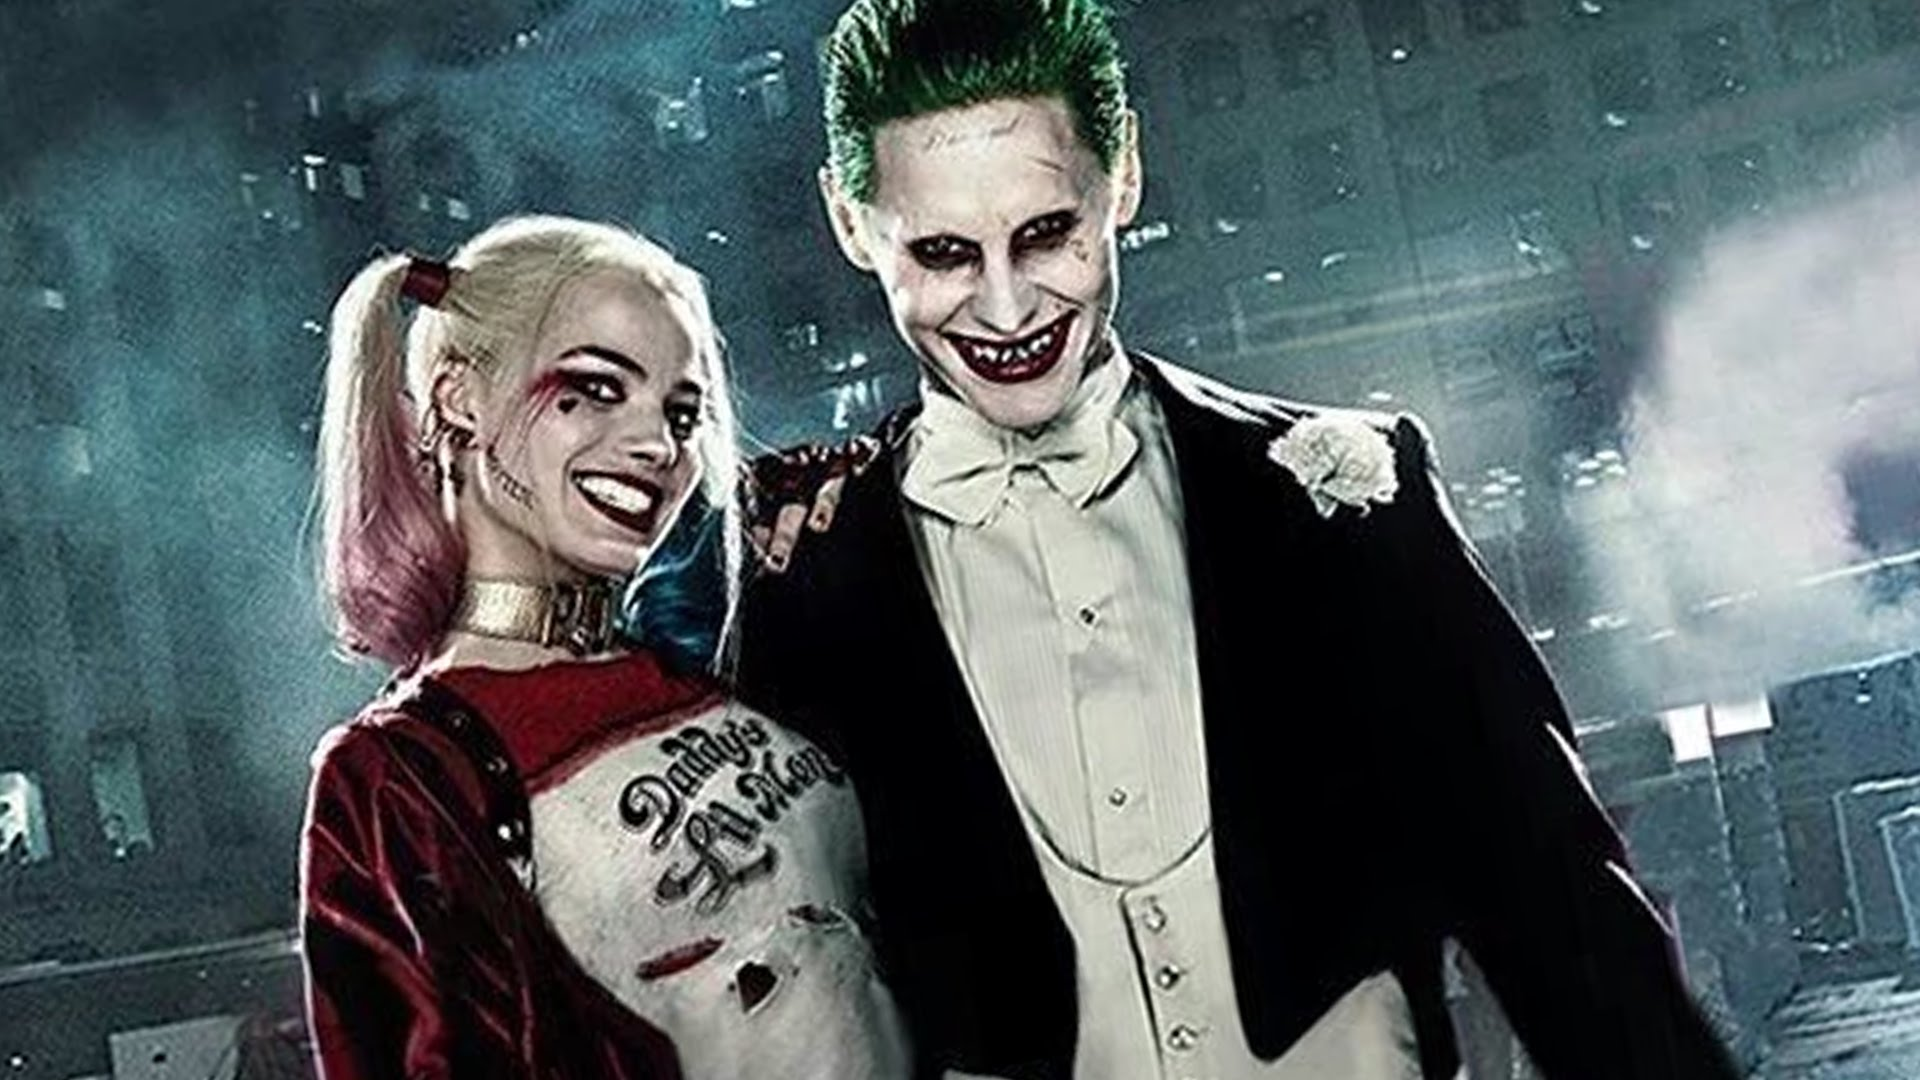 Writers Compare That Joker And Harley Quinn Spinoff To Bad